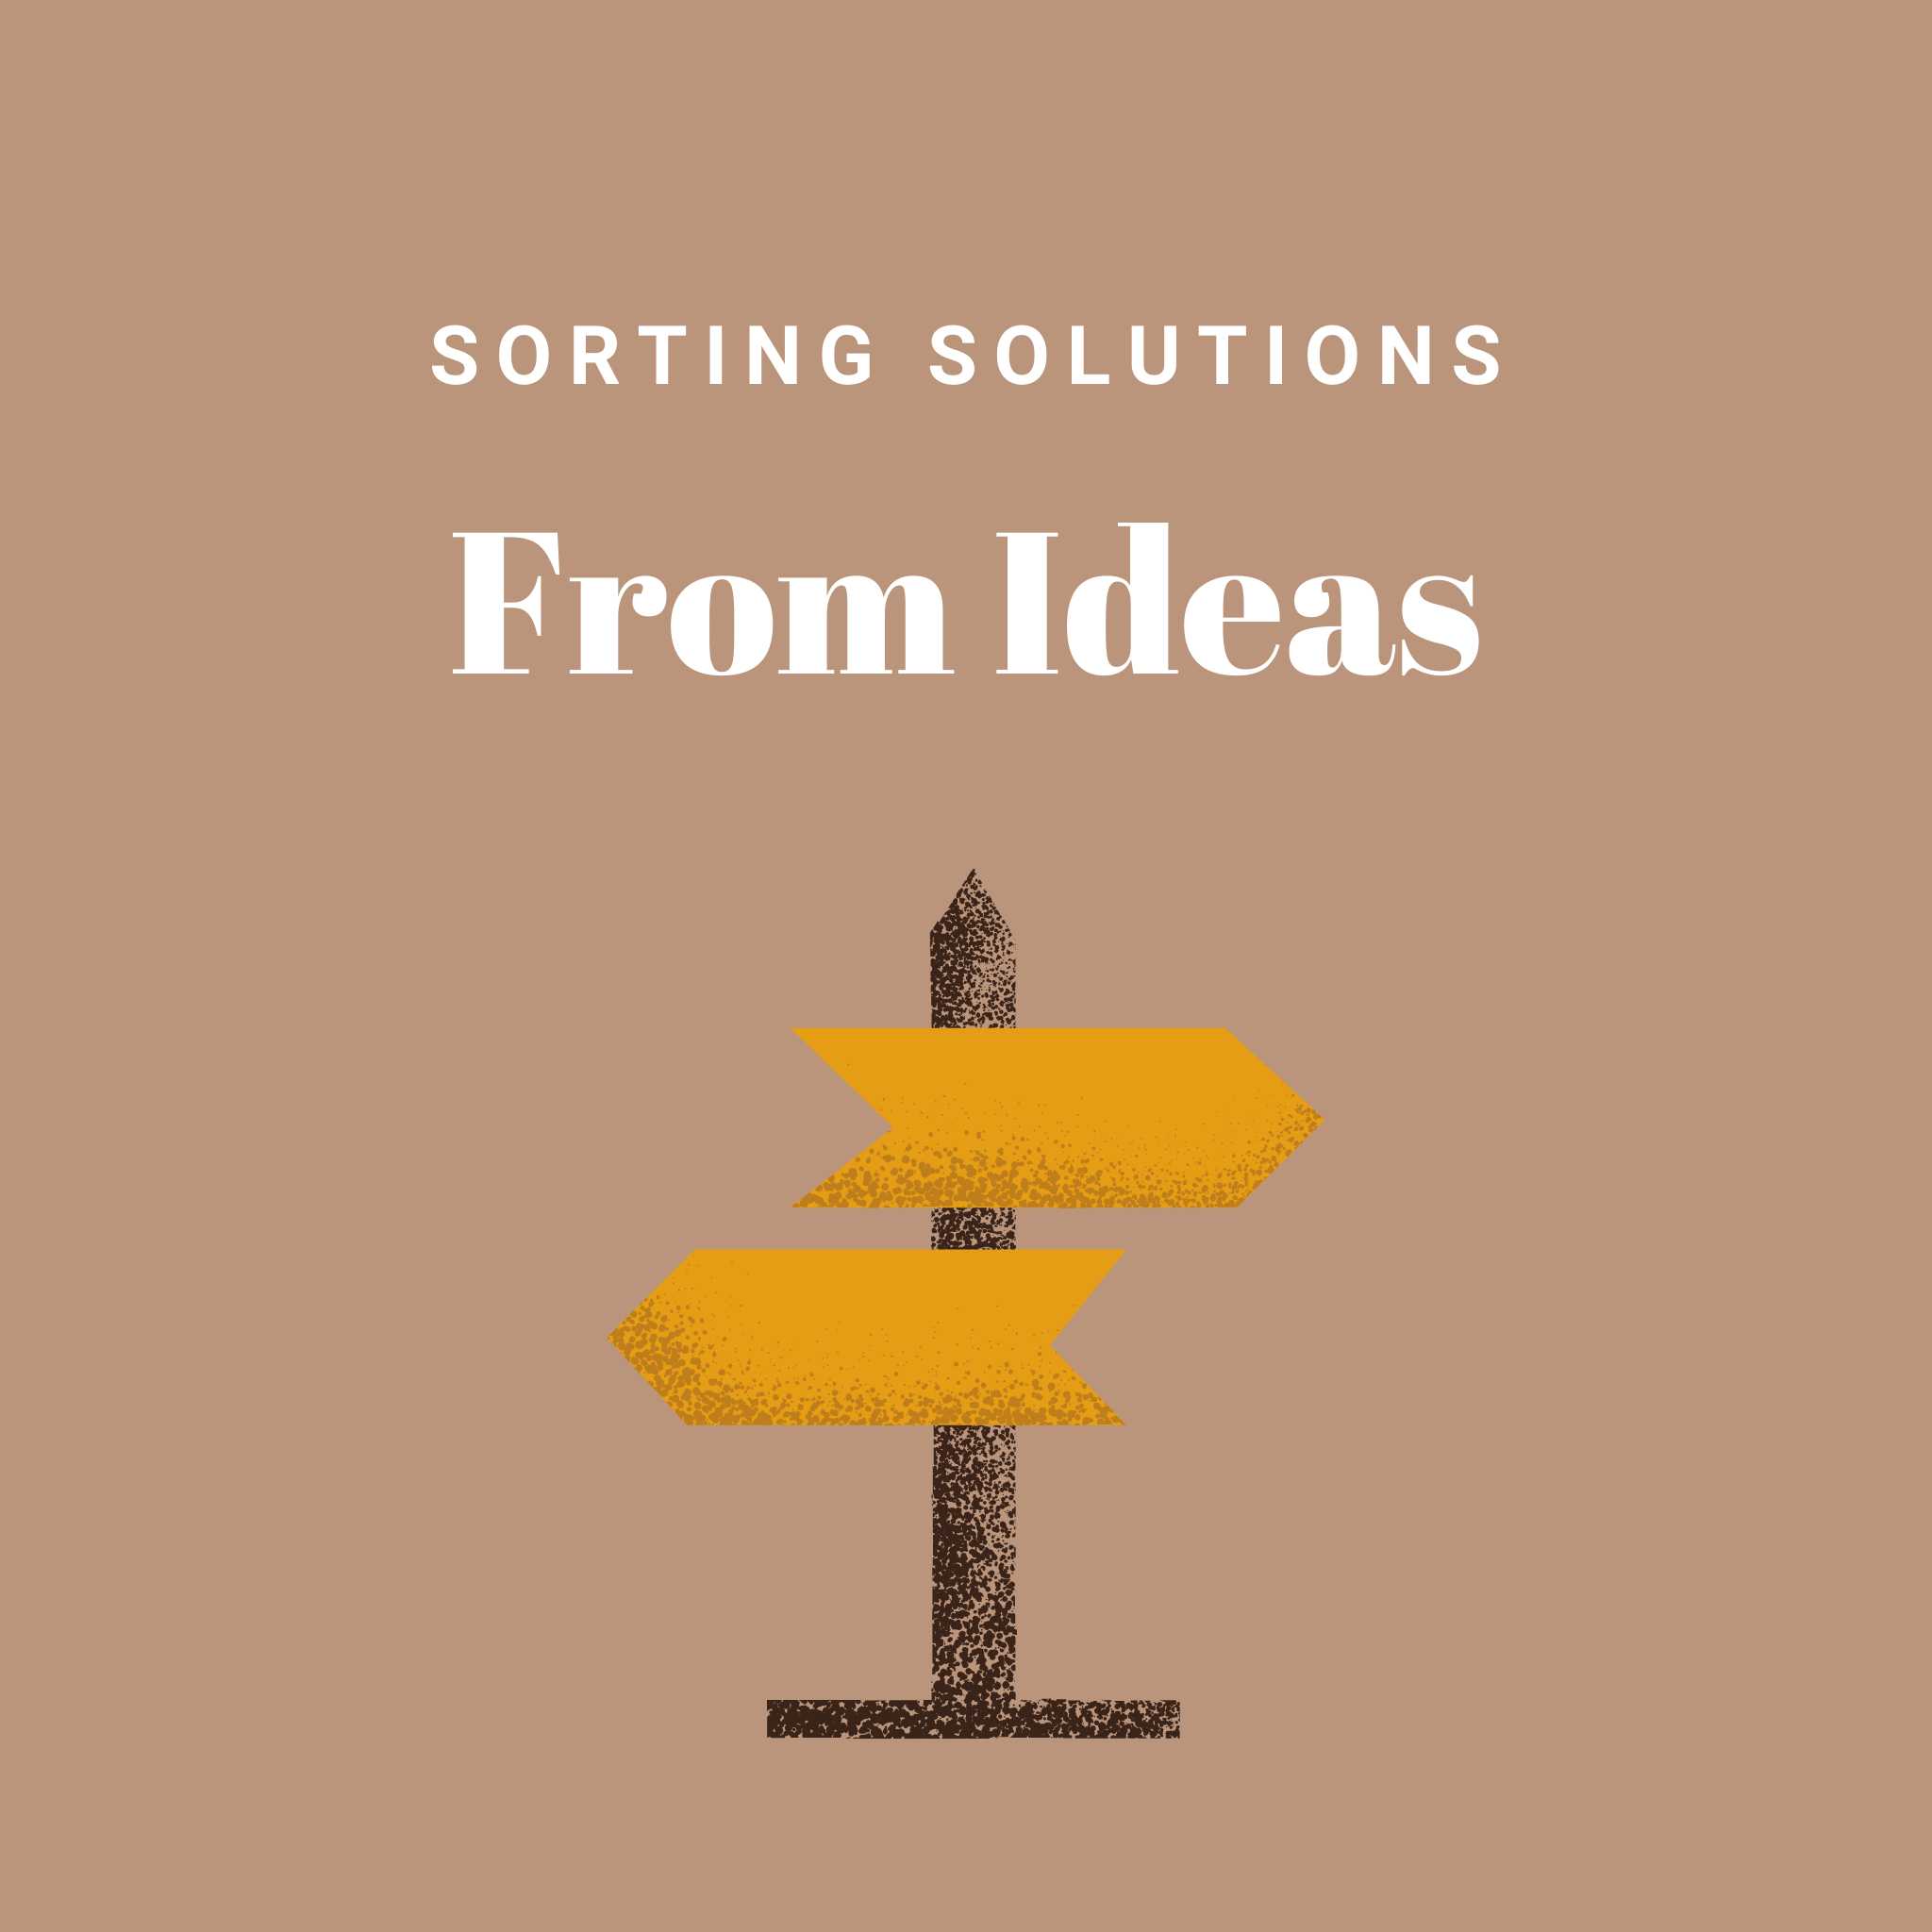 Sorting Solutions from Ideas